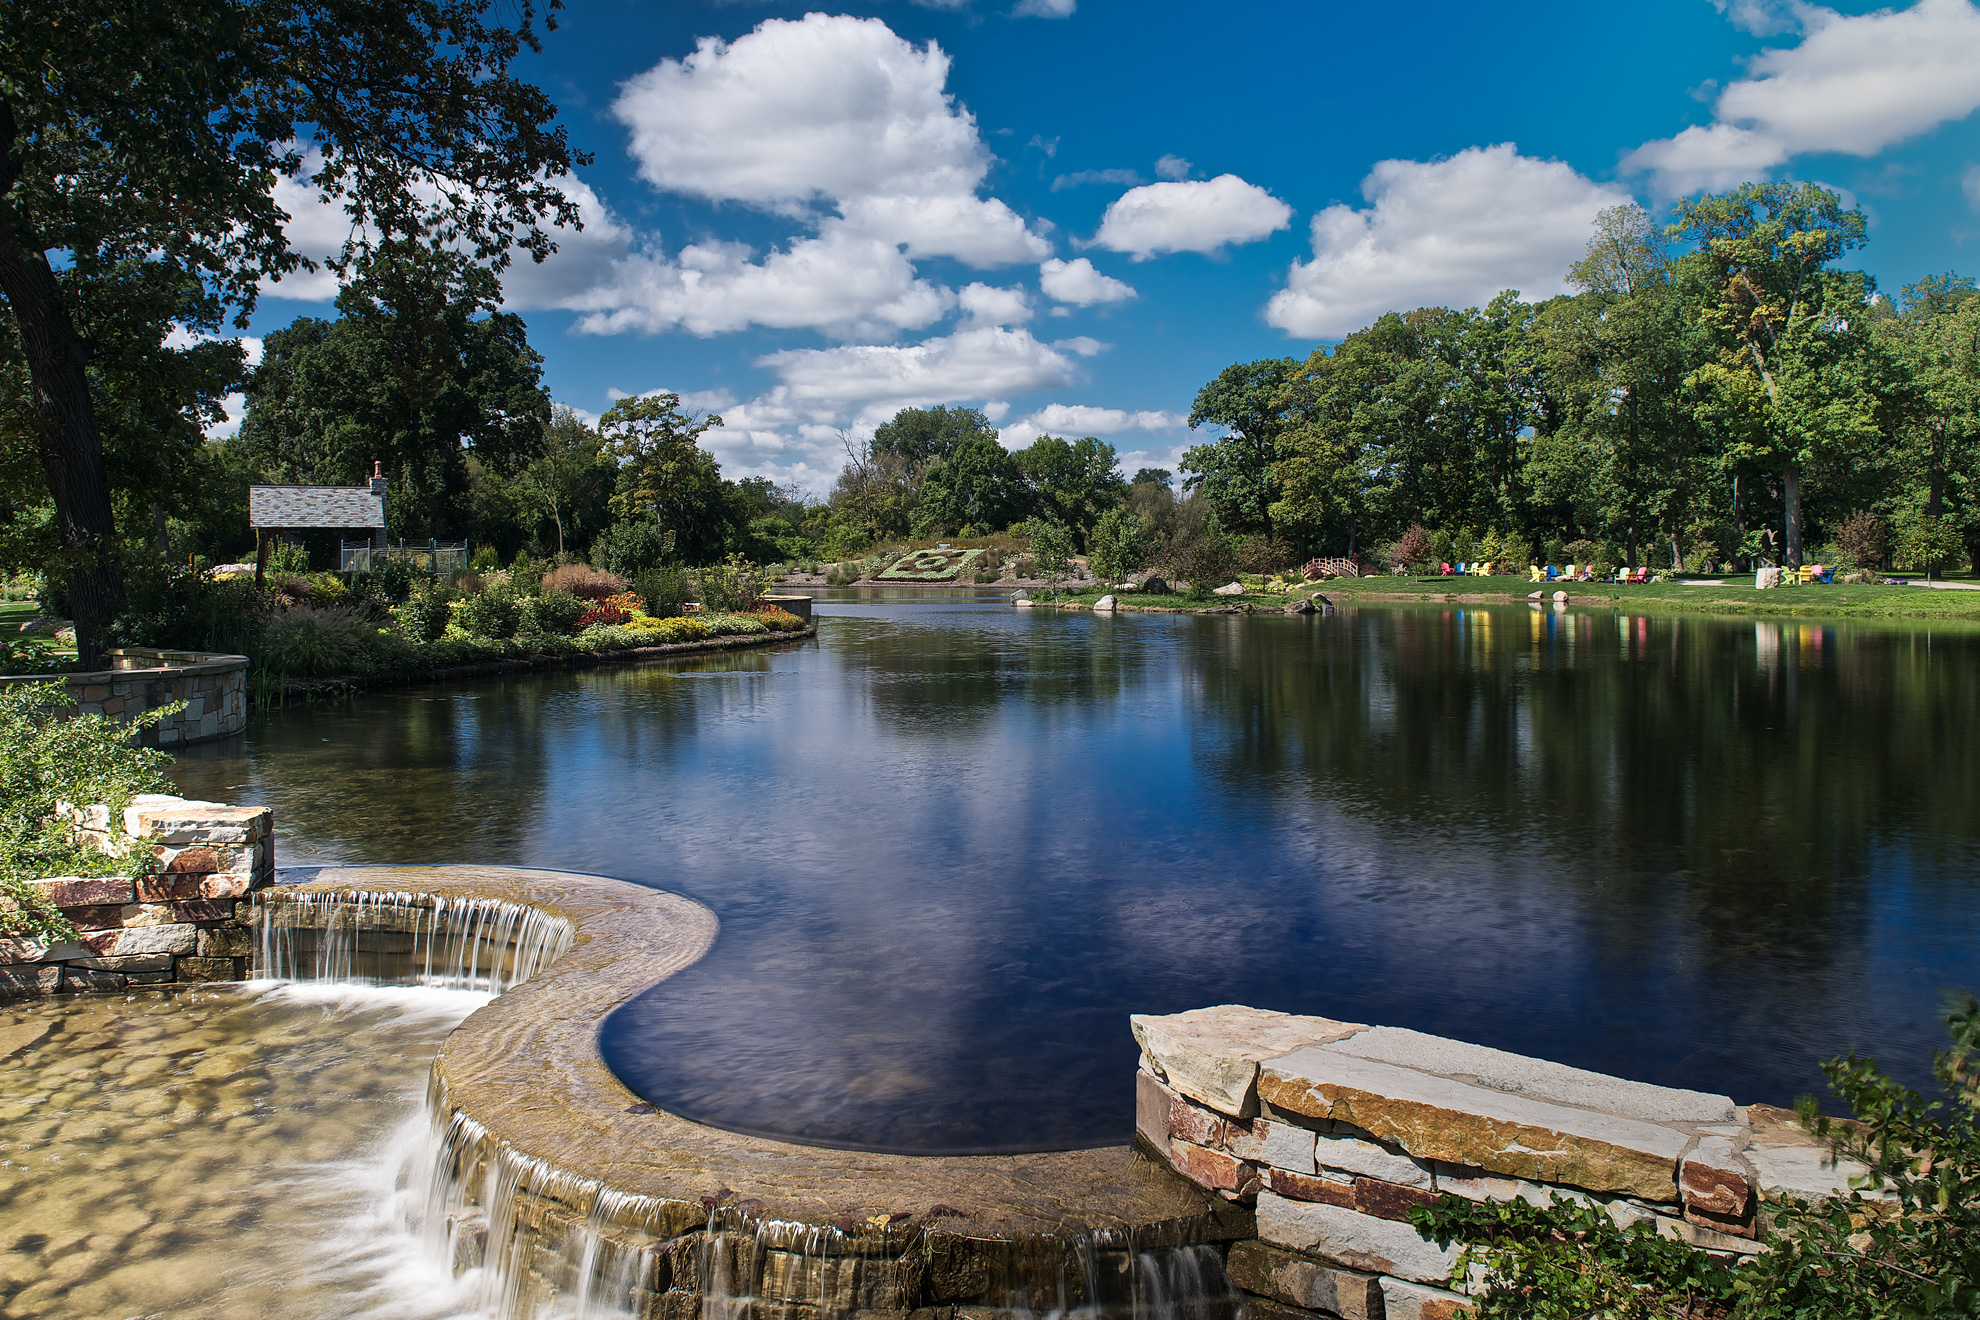 A beautiful waterfall over lookin the large pond at Wellfield Botanic Gardens in Elkhart Indiana designed by JPR